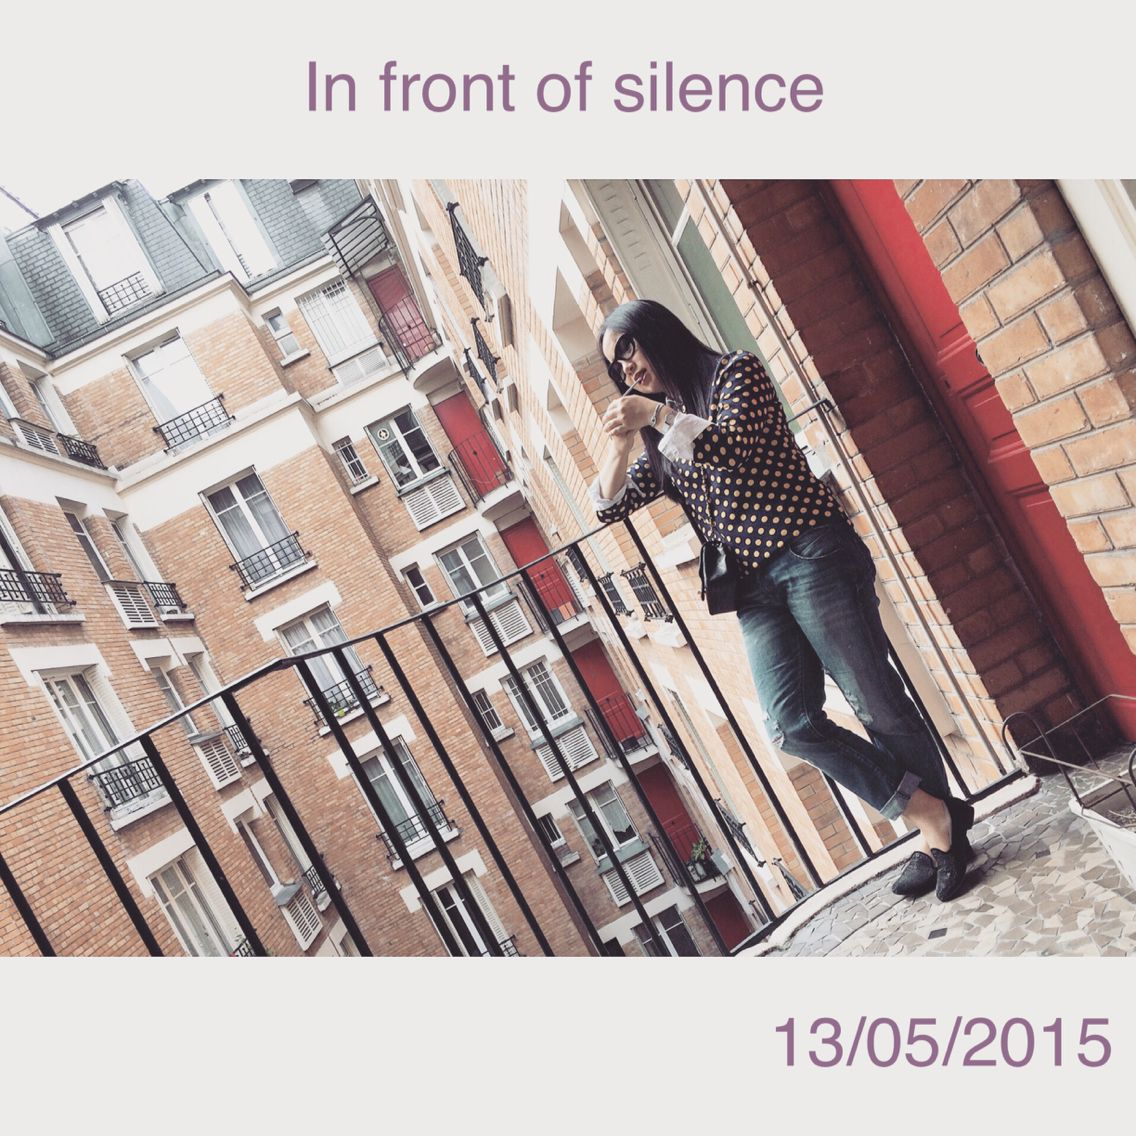 In front of silence